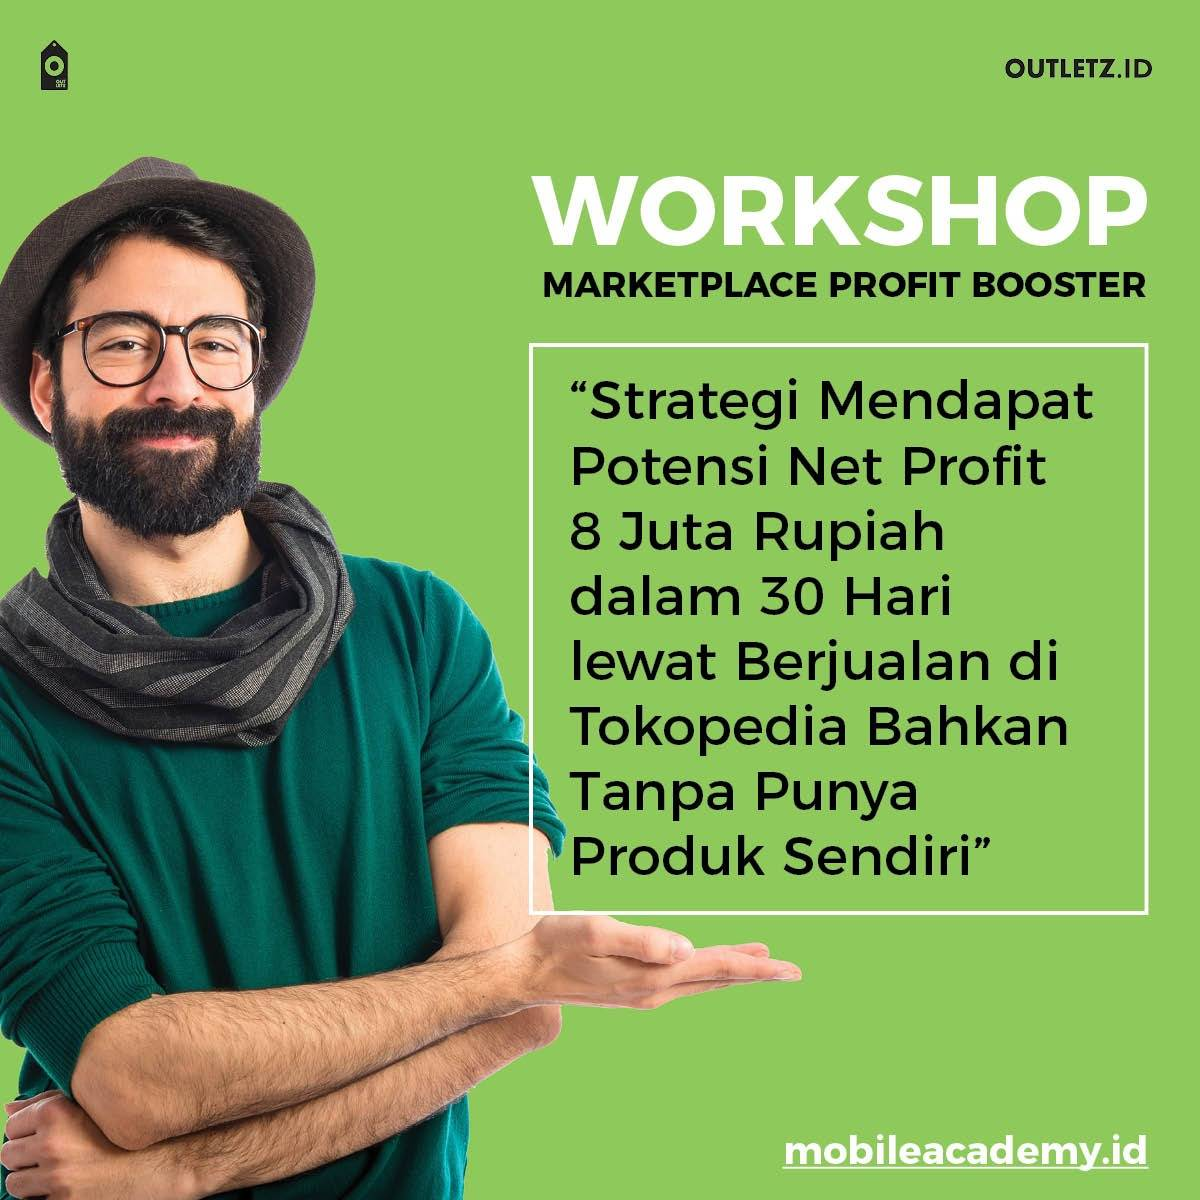 Workshop Marketplace Profit Booster0